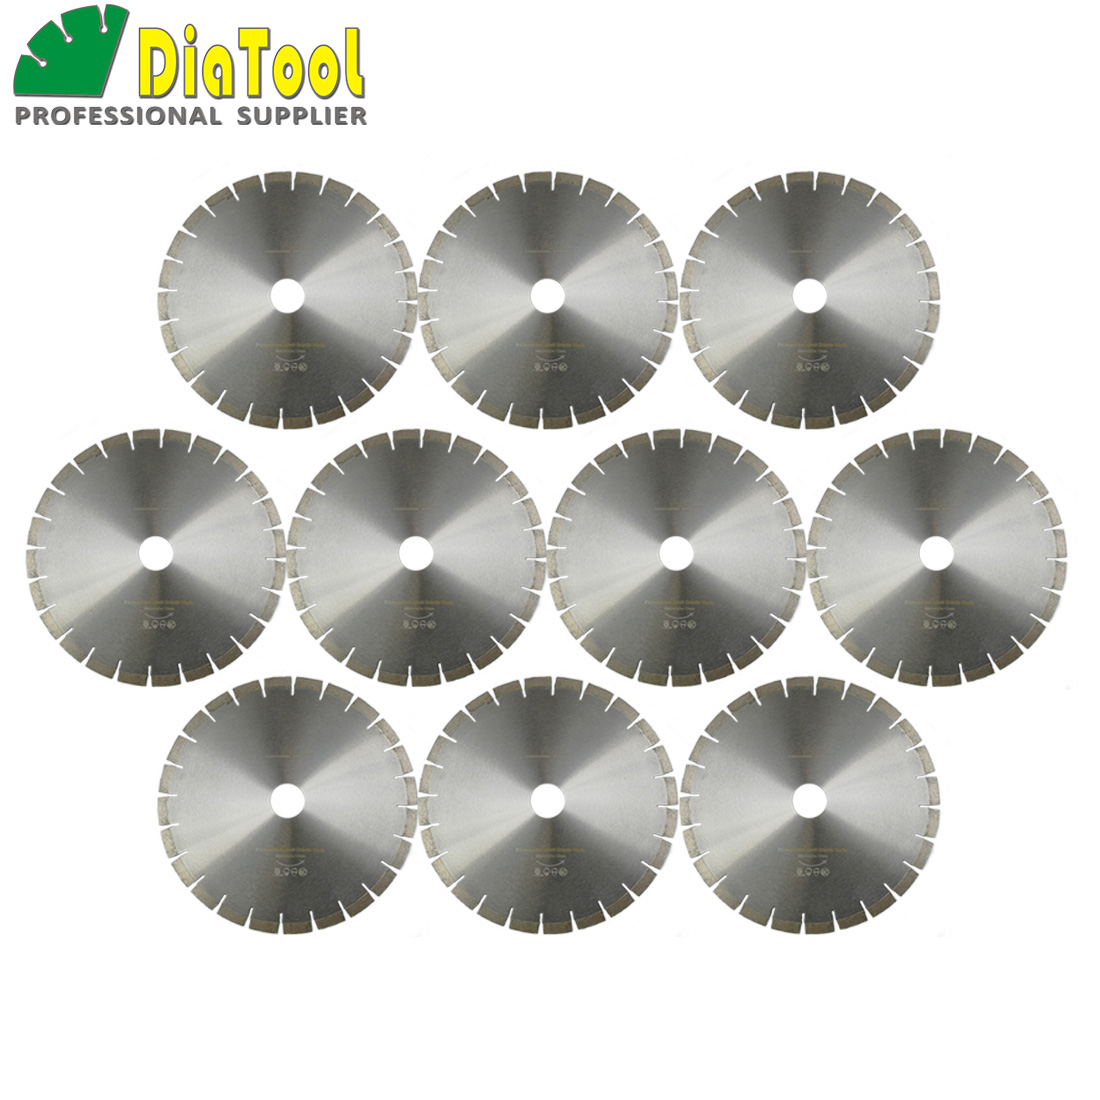 DIATOOL 10pcs 14 Diamond Silent Saw Blade Sandwich Steel Core Cutting Disc Bore 50mm Dia 370mm Granite Blade Diamond Wheel Disk free shiping1pcs aju c10 10 100 10pcs ccmt060204 dia 10mm insertable bore drilling end mill cutting tools arbor for ccmt060204